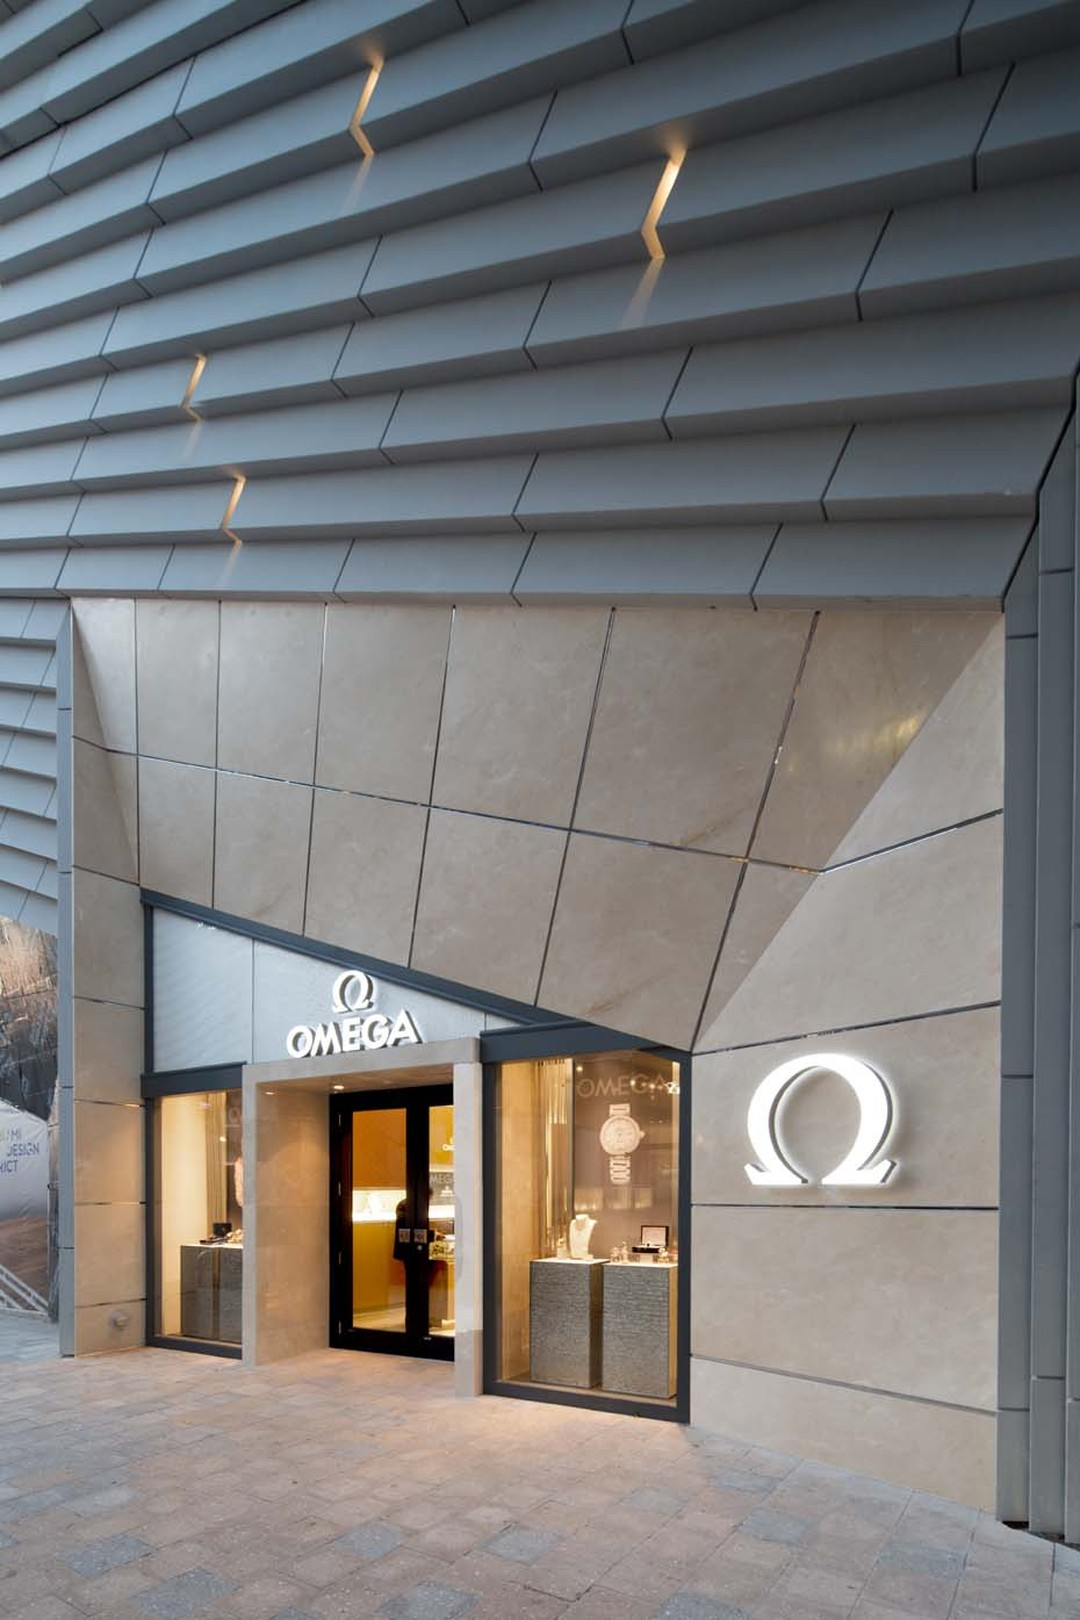 Omega watches, one of the world's most respected watchmaking brands, has one of its five Miami boutiques located within the Miami Design District.